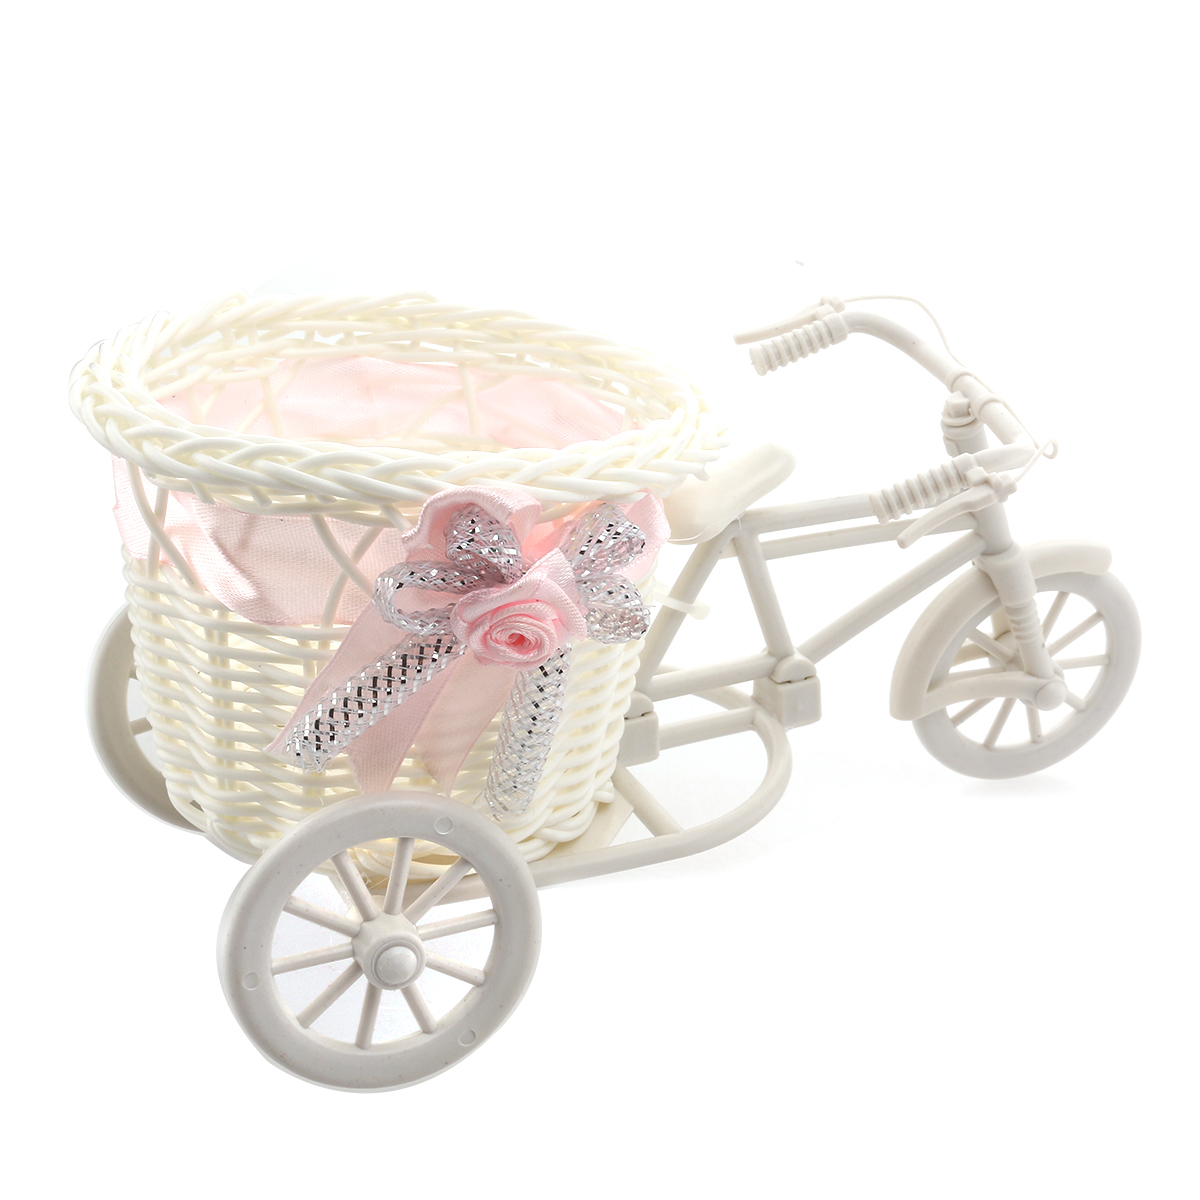 Handmade Bicycle Baskets : Novelty mini handmade rattan baskets tricycle bicycle